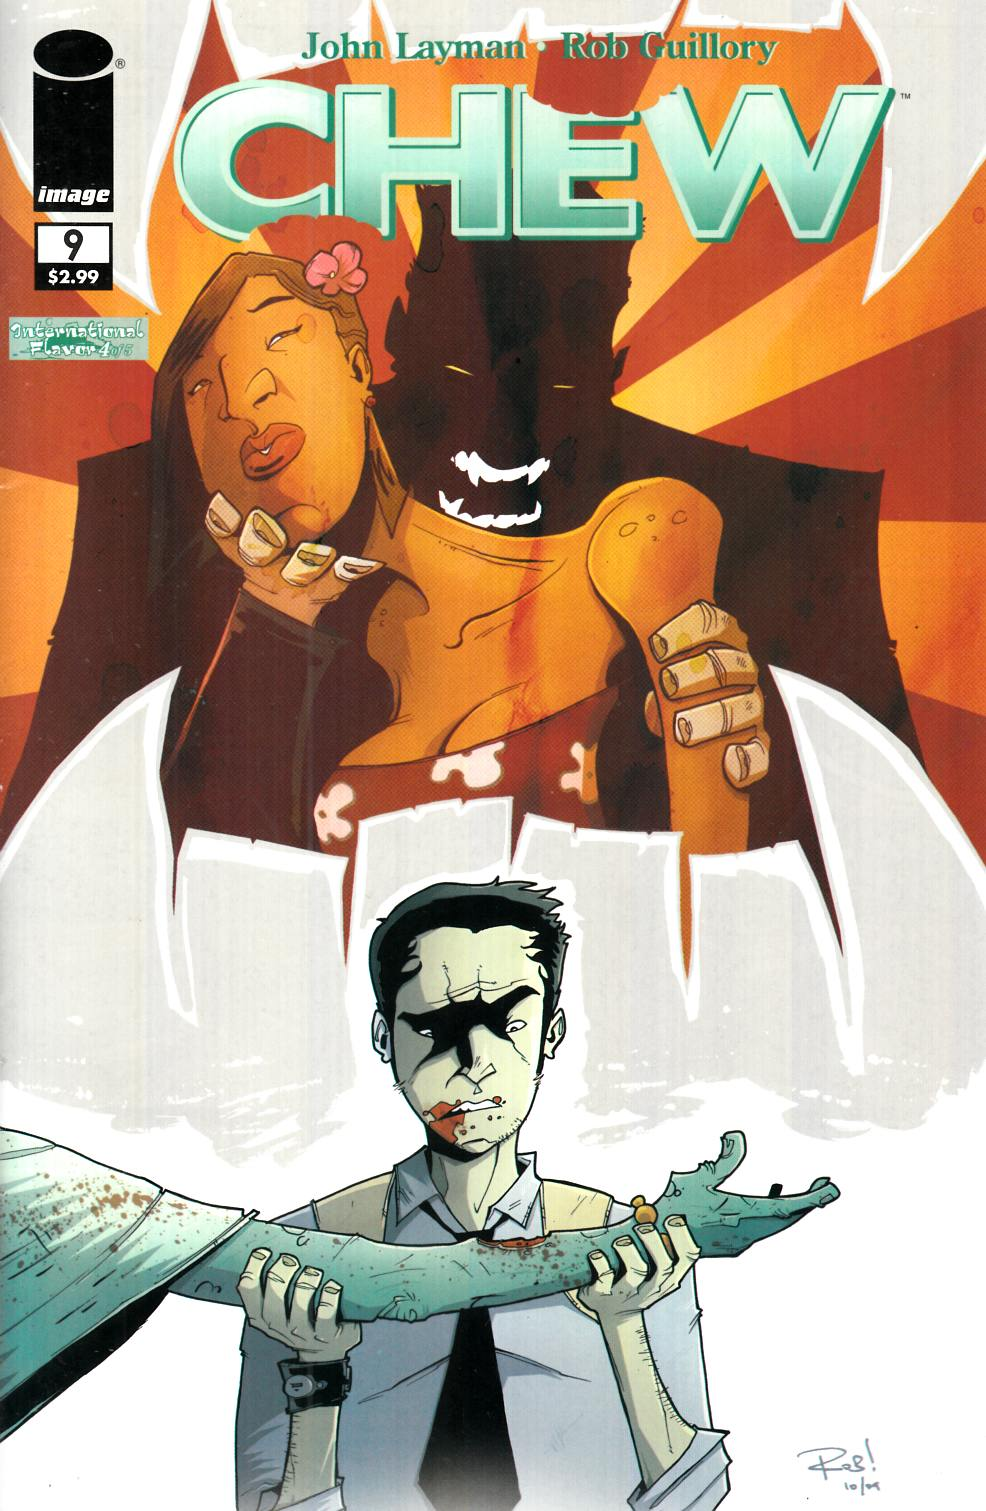 Chew #9 [Image Comic]